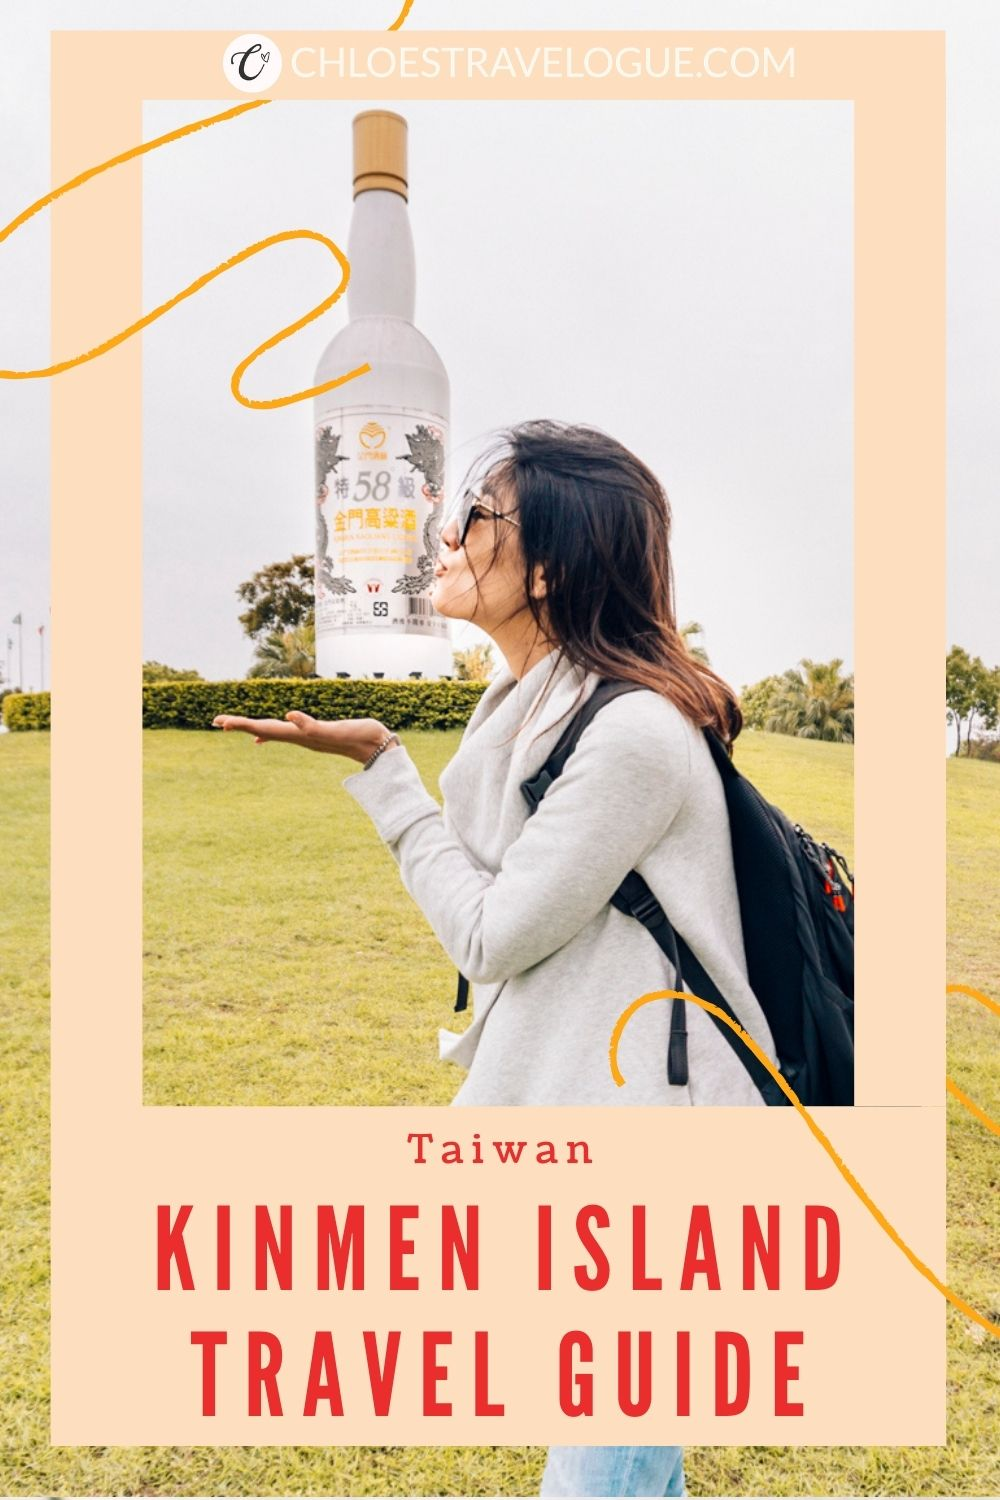 Looking for an off-the-beaten-path in Taiwan? Kinmen Island is an unconventional destination filled with rich history, culture, and ancient architecture. | #KinmenIsland #KinmenKaoliang #KinmenTaiwan #traveltaiwan #travelasia